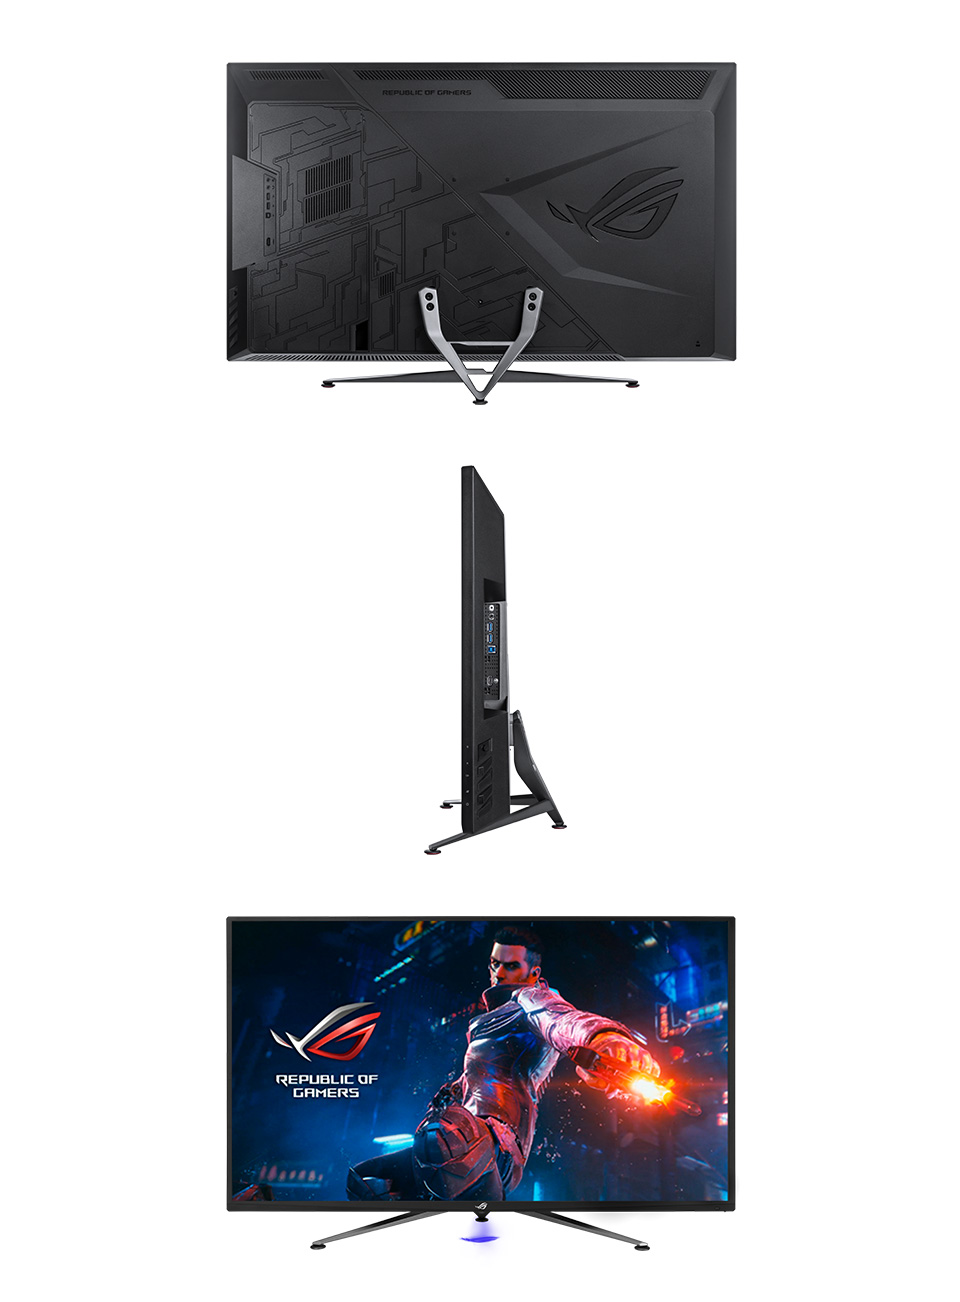 Asus ROG PG43UQ 4K UHD 144Hz G-Sync HDR 43in Monitor product